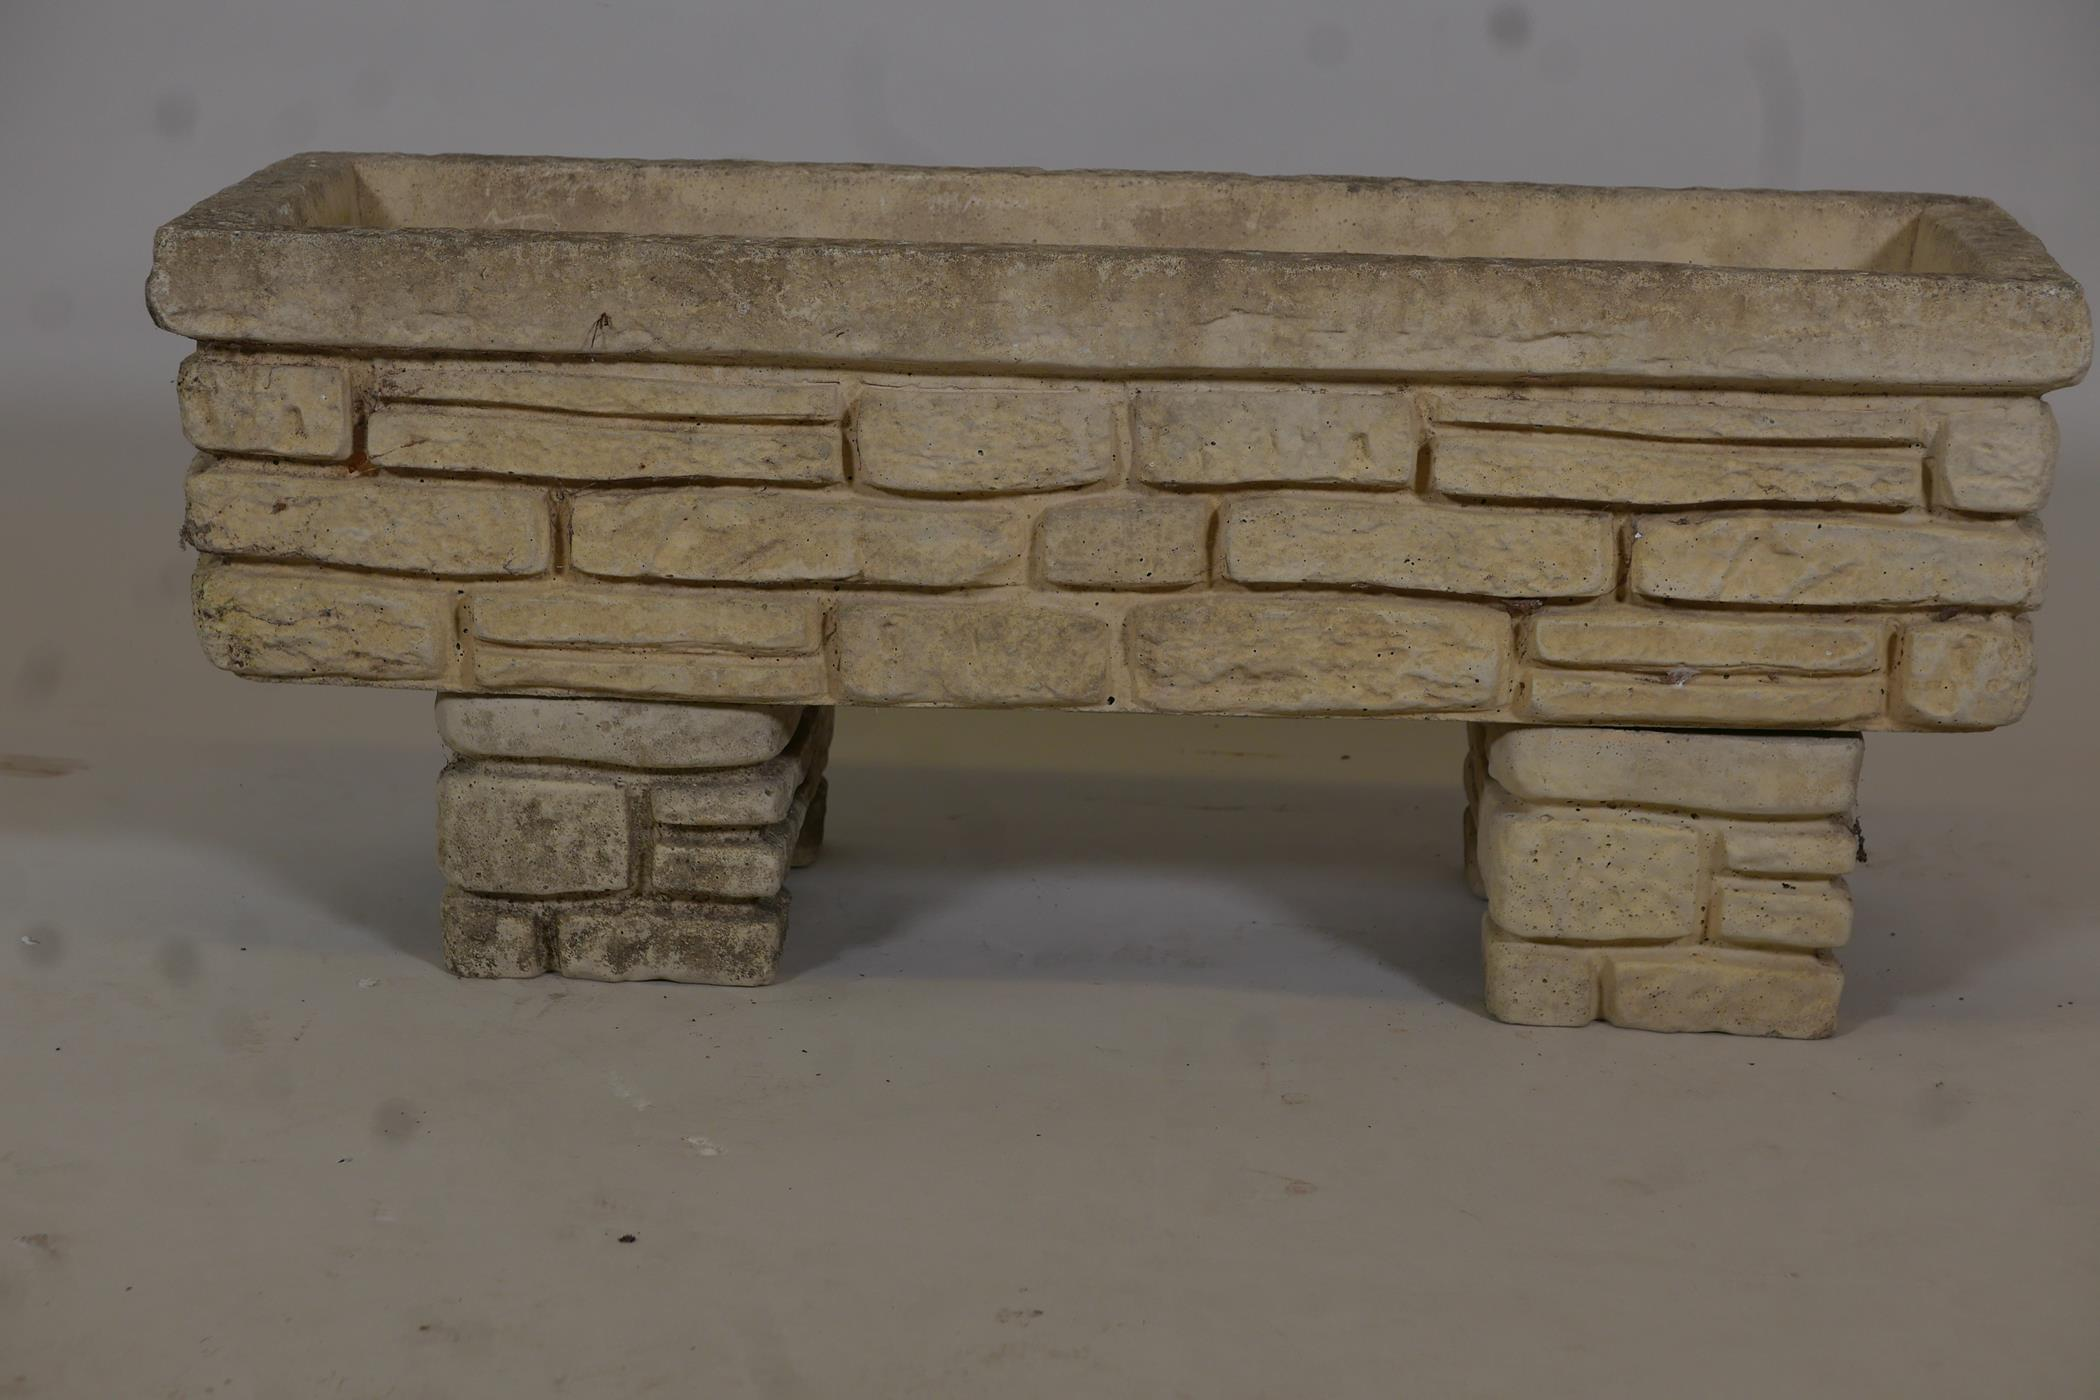 """A reconstituted stone planter moulded as Cotswold stone, 30"""" x 10"""" - Image 2 of 3"""